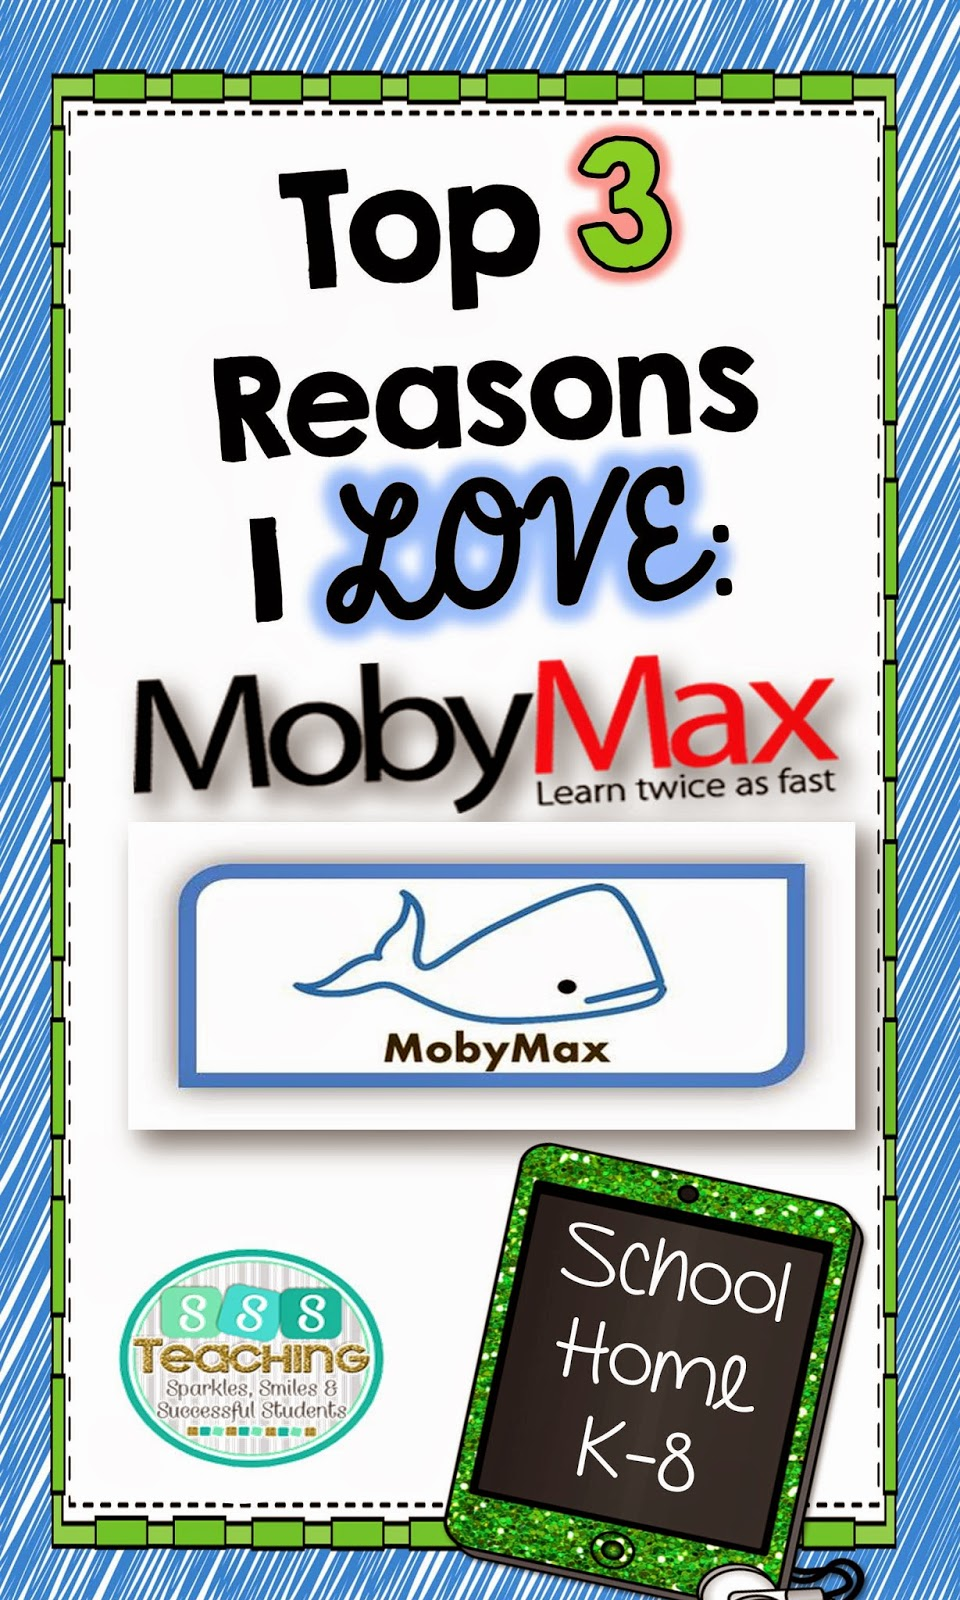 Moby max tablet sssteaching